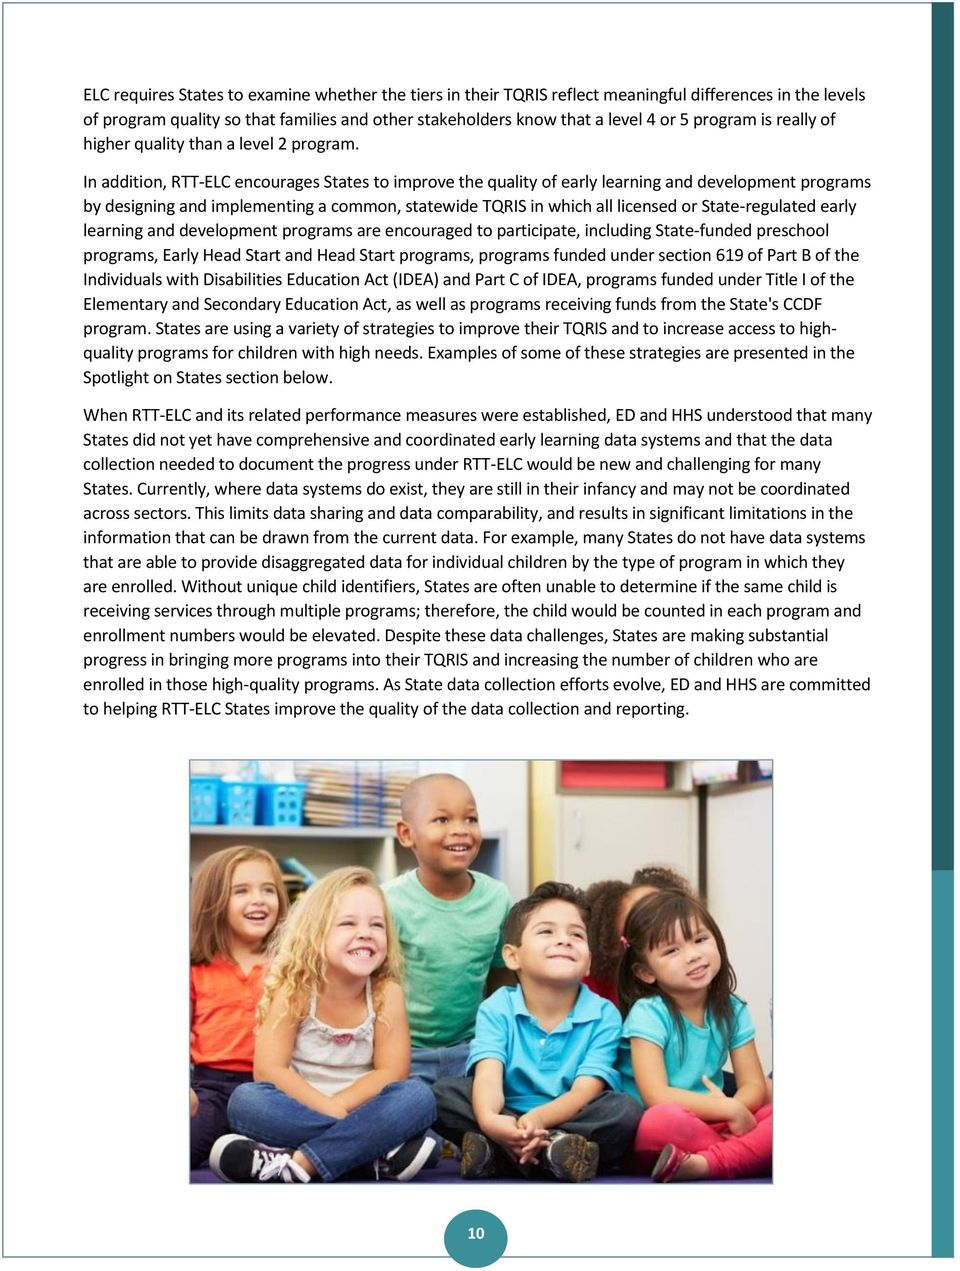 In addition, RTT-ELC encourages States to improve the quality of early learning and development programs by designing and implementing a common, statewide TQRIS in which all licensed or